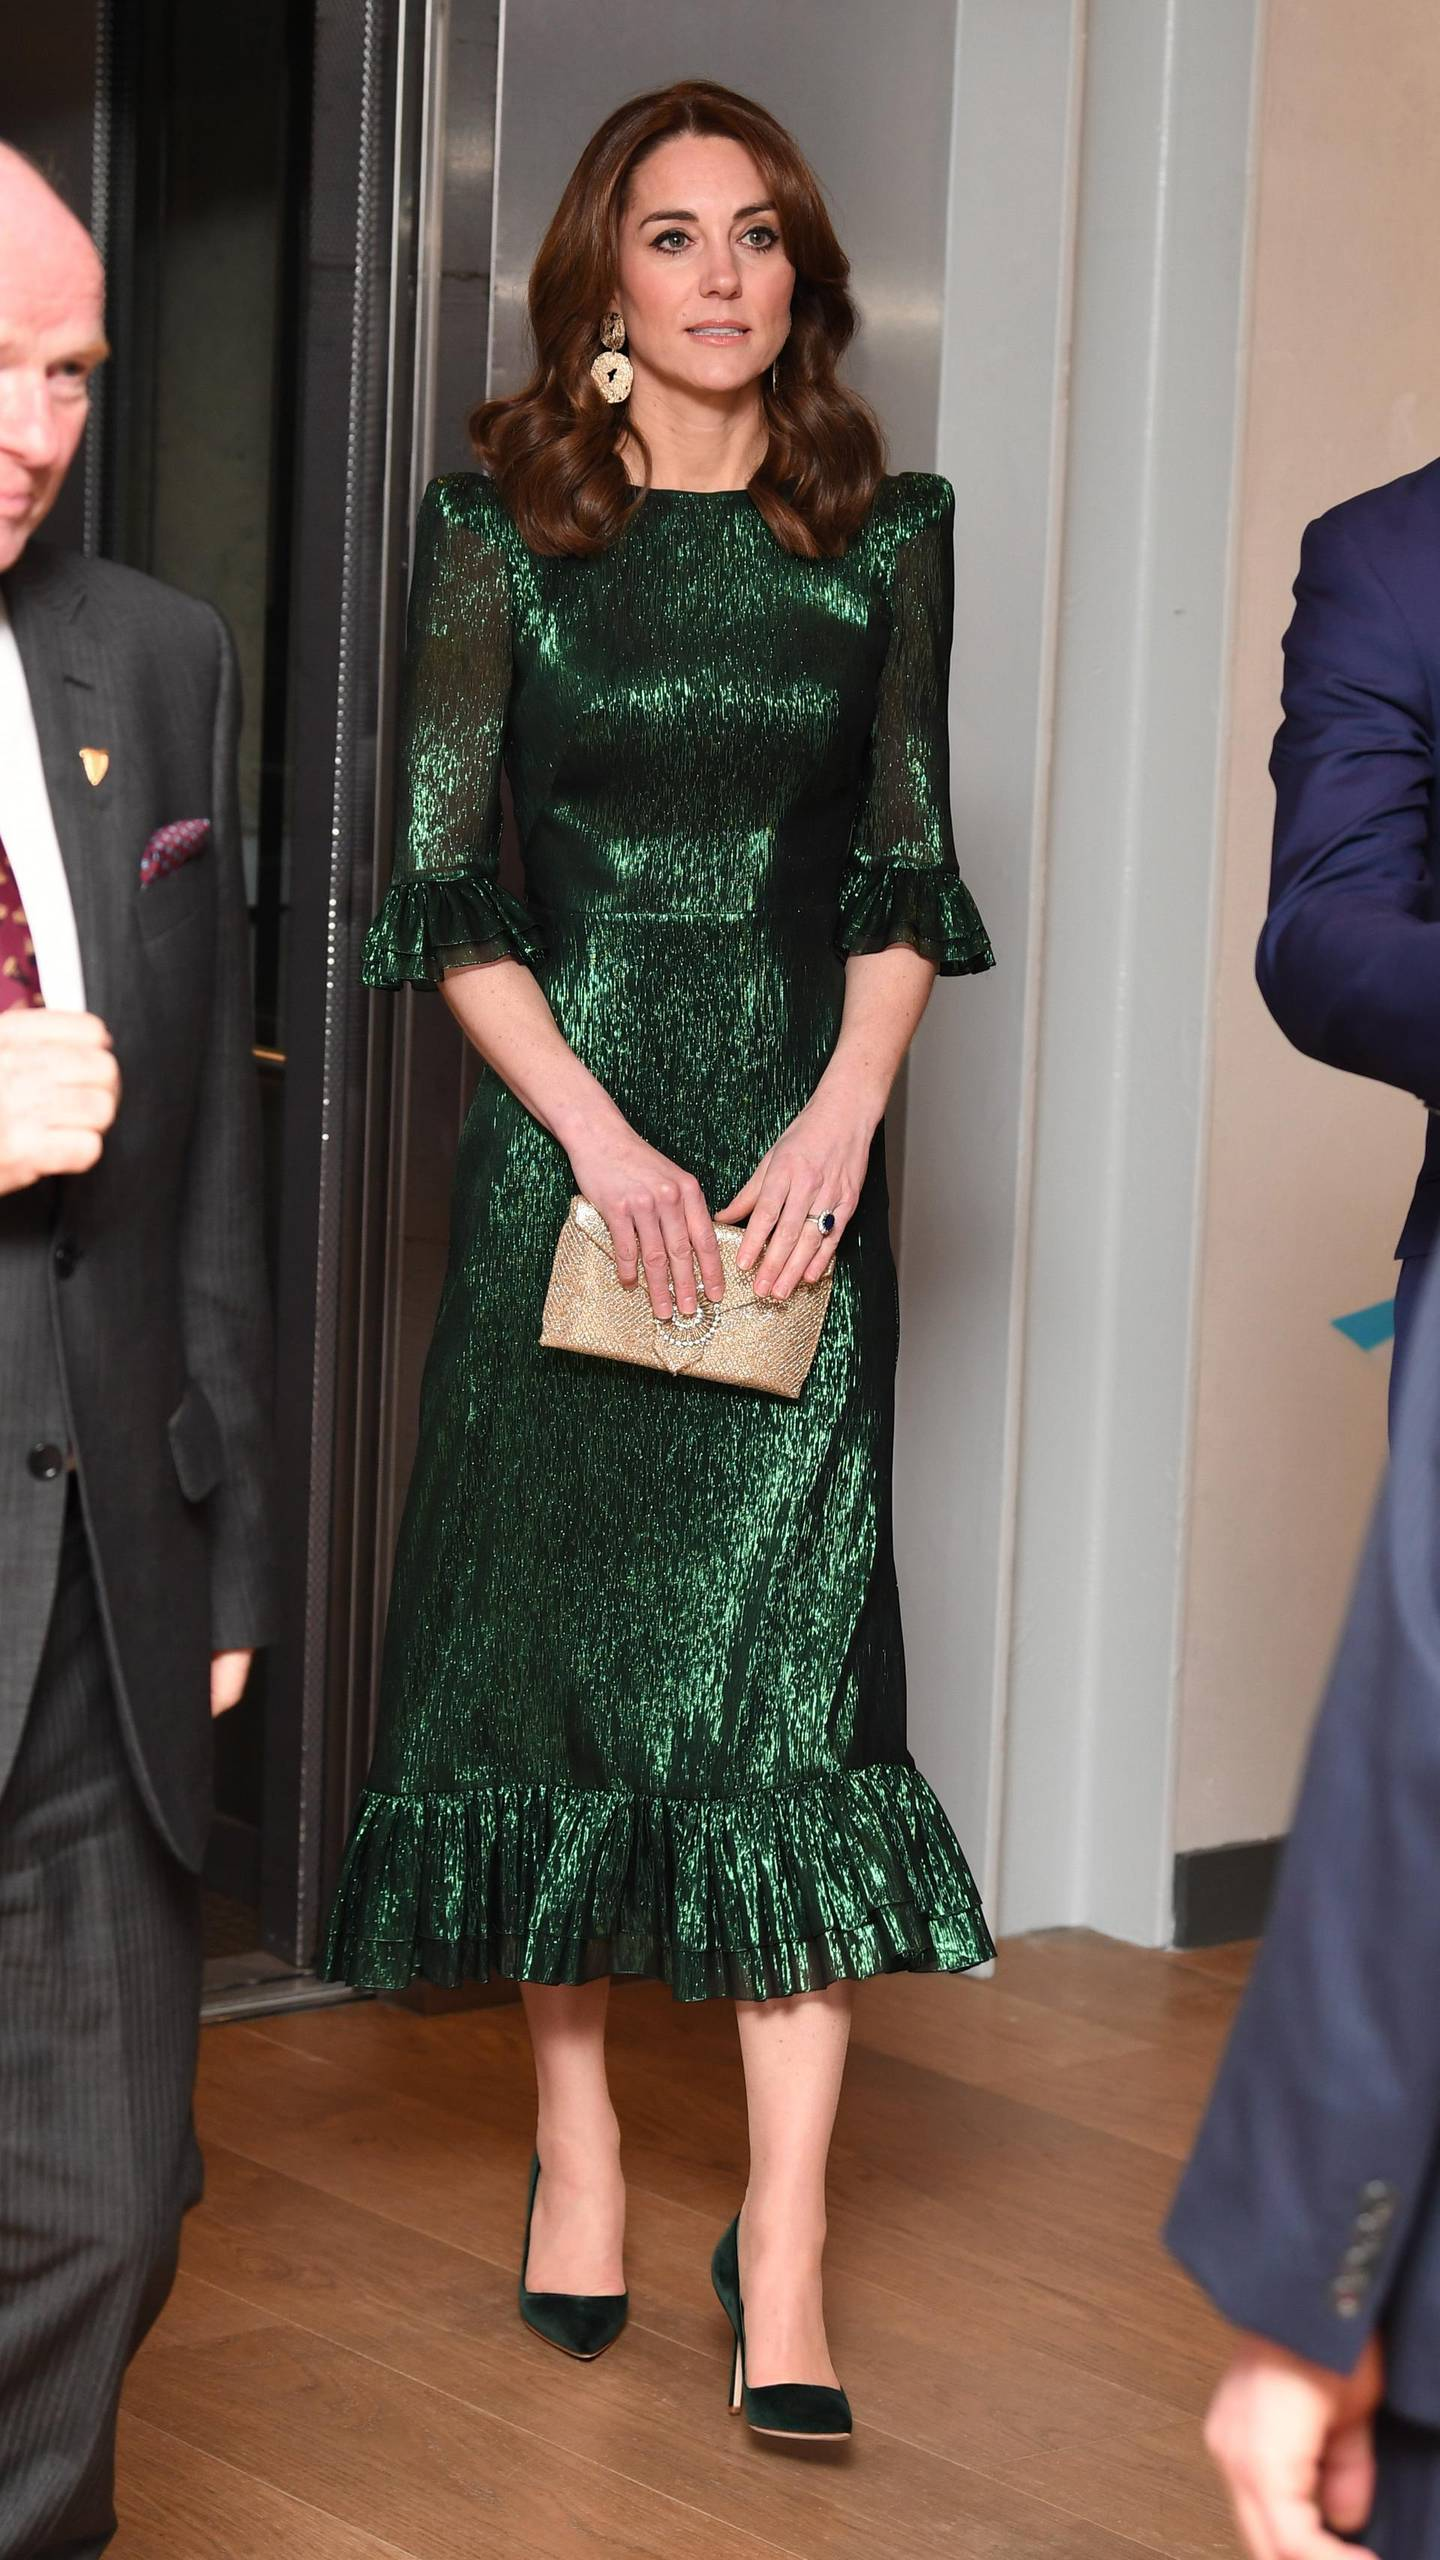 epa08268067 The Duchess of Cambridge attends a reception at the Guinness Storehouse's Gravity Bar, hosted by the British Ambassador to Ireland in Dublin, Ireland 03 March 2020.  EPA-EFE/JAMES WHATLING / POOL